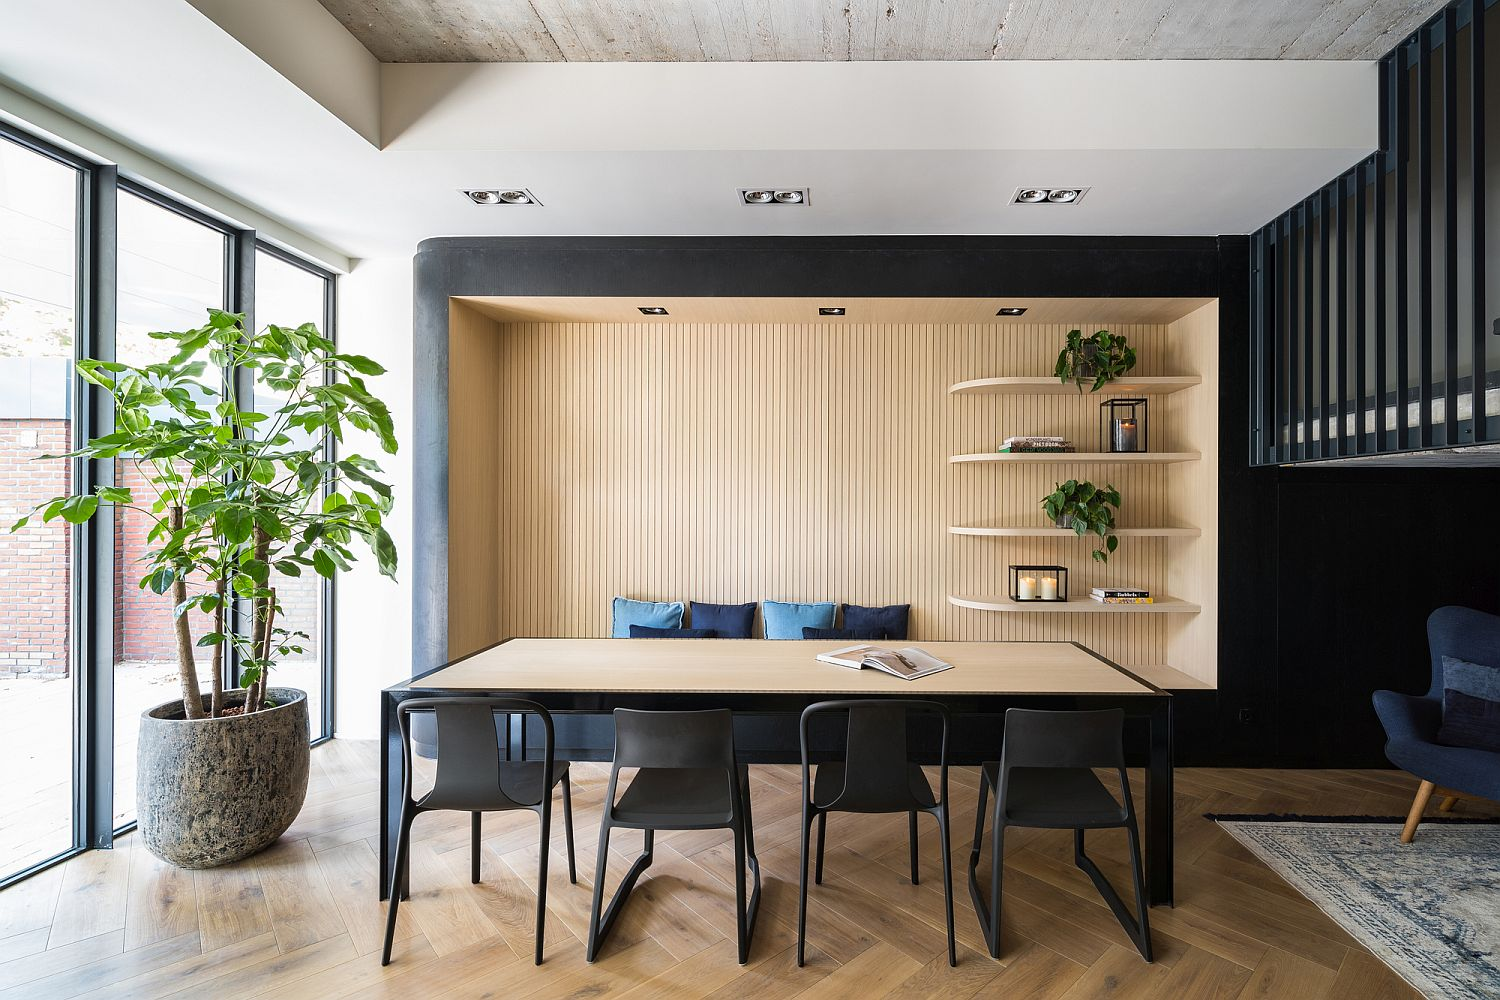 Concrete, wood and dark backdrop gives the apartments an urbane sophistication